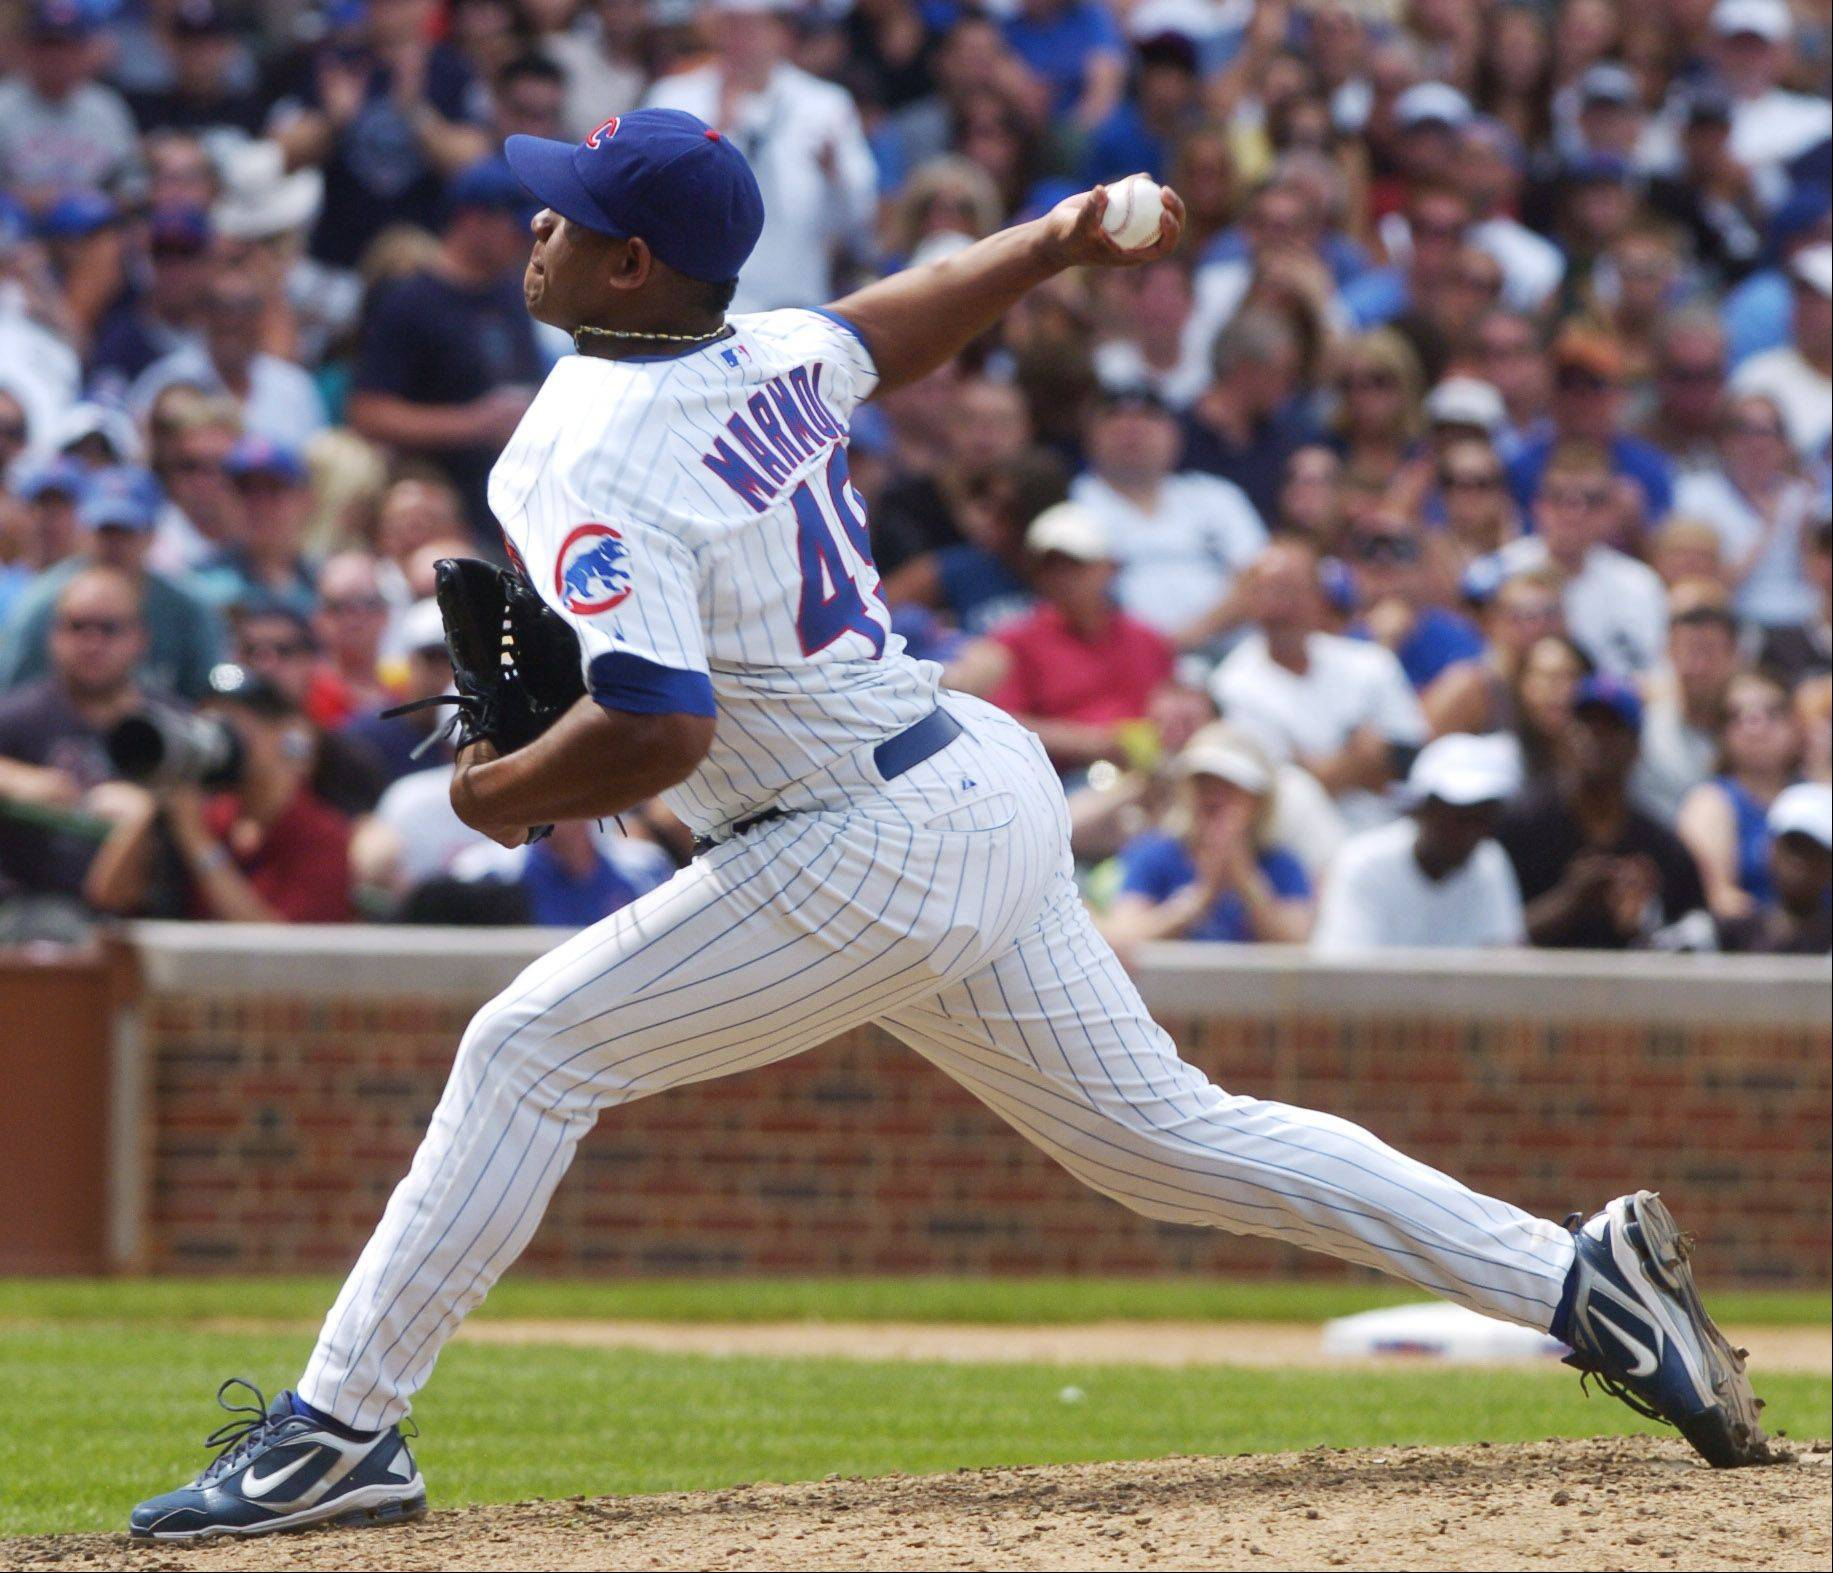 Cubs closer Carlos Marmol strikes out Alexei Ramirez of the White Sox to end the eighth inning of Sunday's game at Wrigley Field.